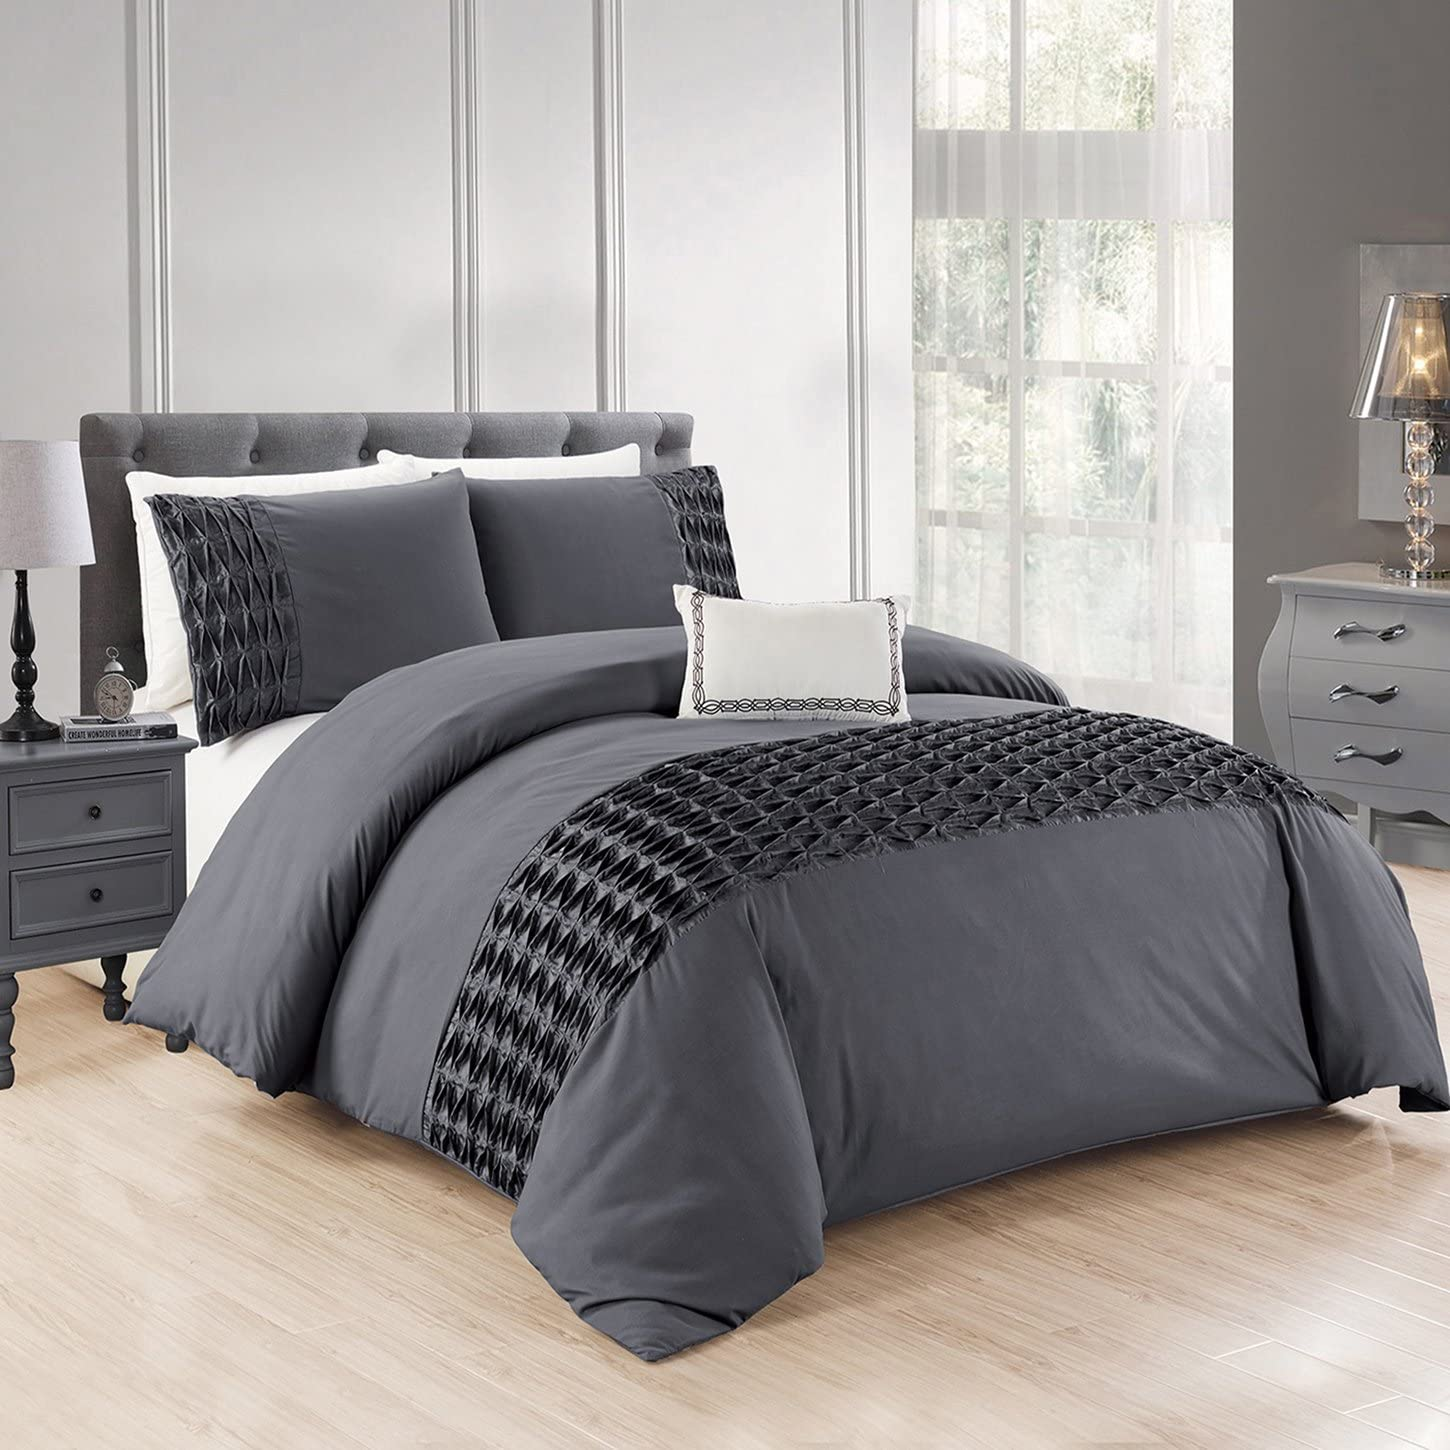 NEW Duvet Cover with Pillow Case Bedding Set Single Double King SKing LYNDA Sale